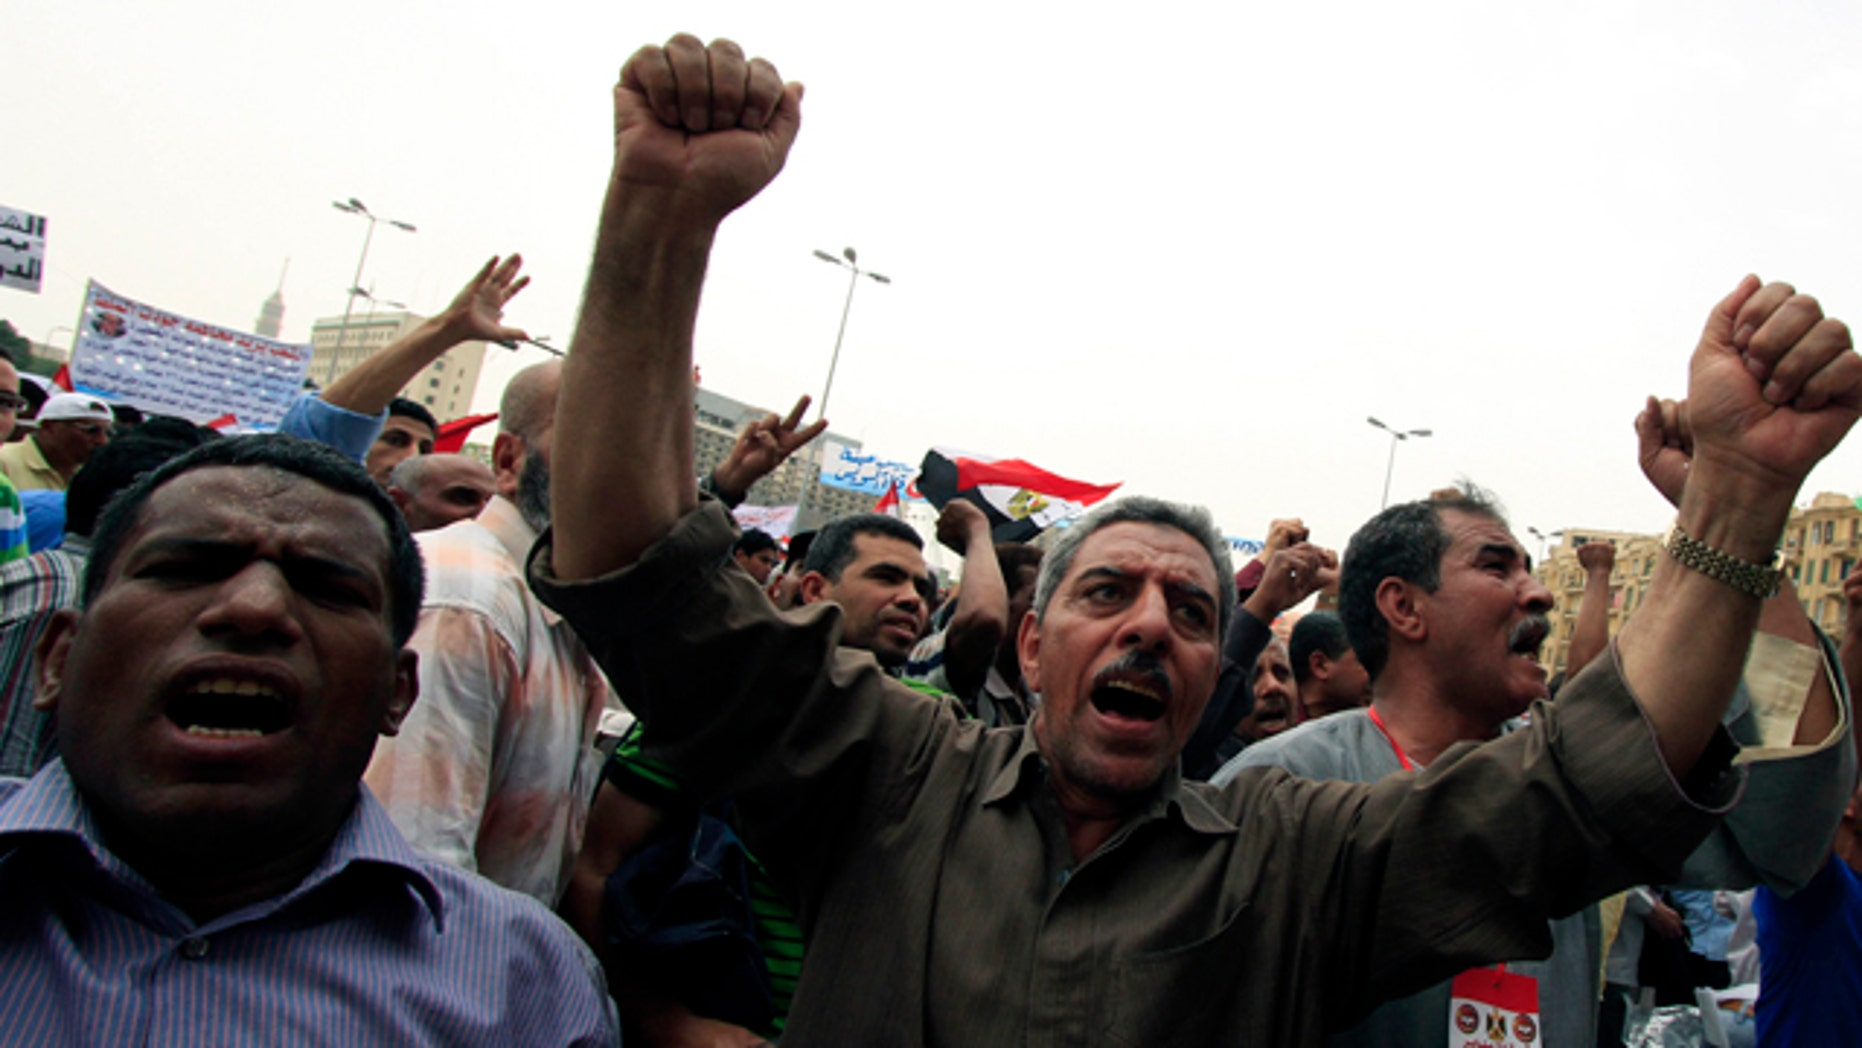 May 27: Egyptian protesters chant slogans as they attend a rally in Tahrir square in Cairo, Egypt. Activists are pressing Egypt's military rulers to investigate accusations of sexual abuses against protesters.